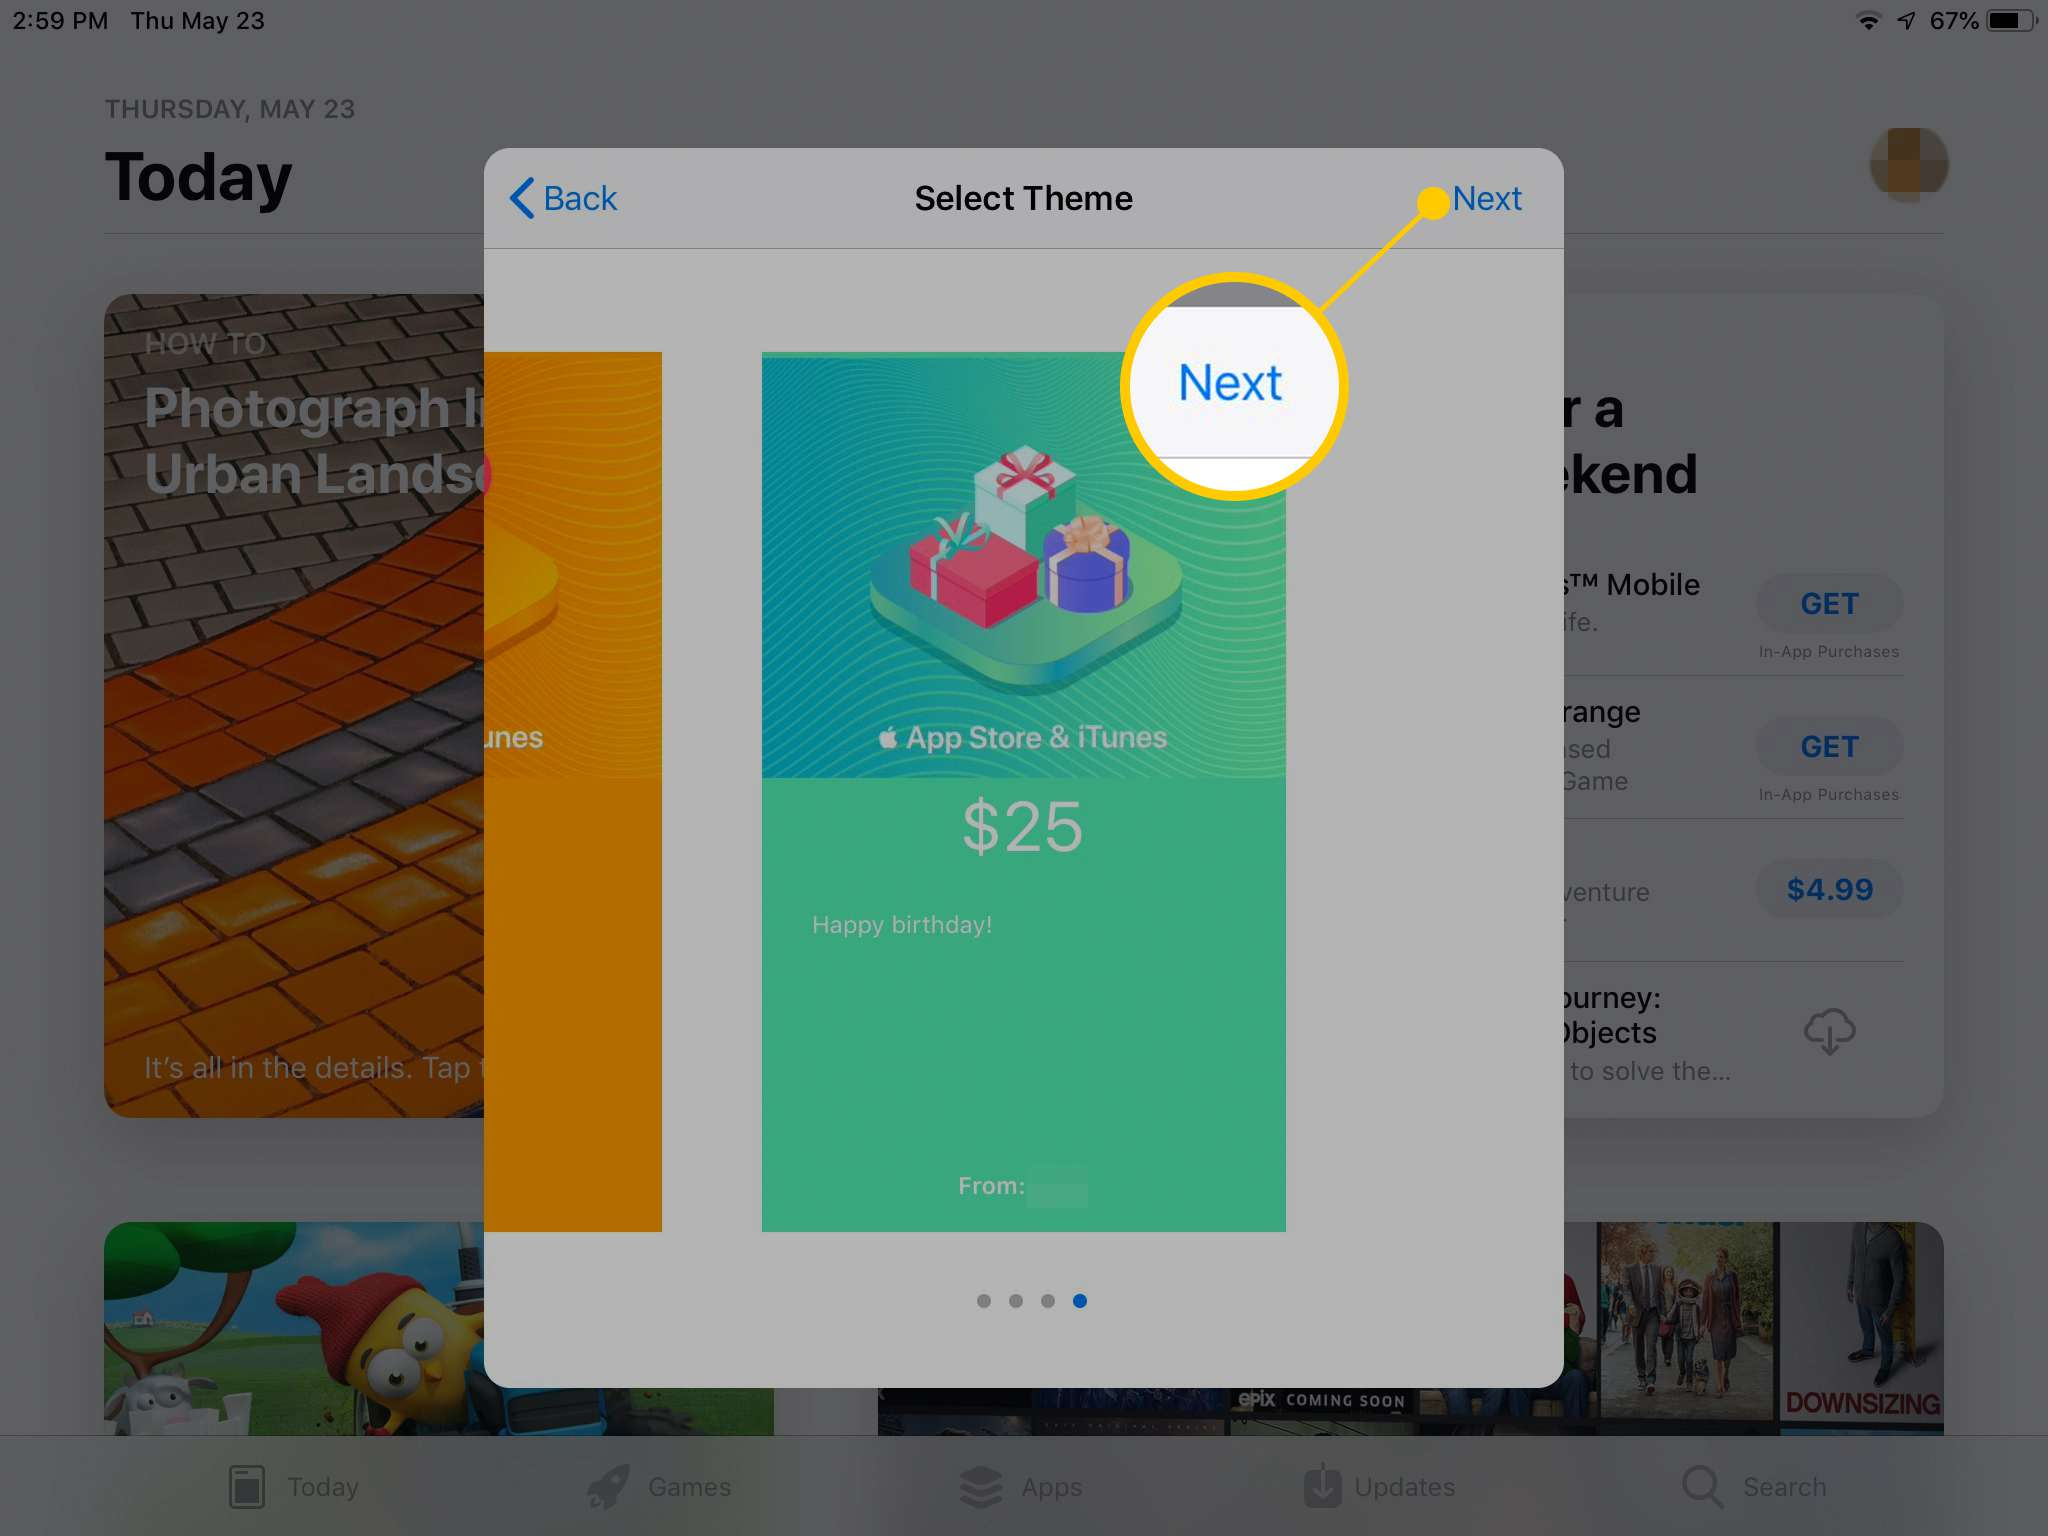 Theme selection screen for Gift Card on App Store